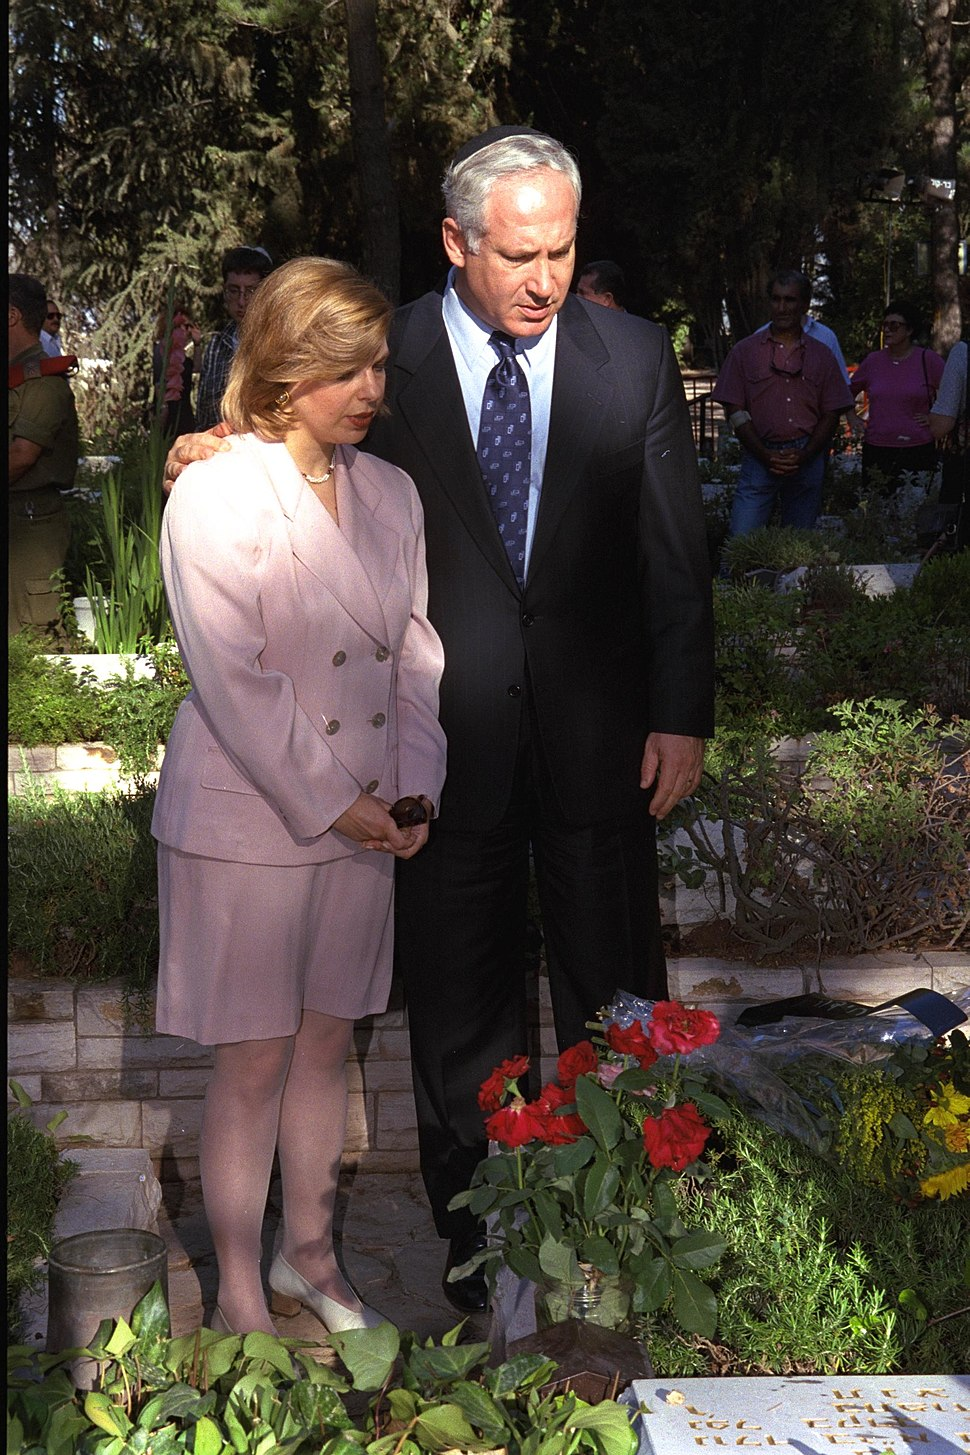 Flickr - Government Press Office (GPO) - P.M. Netanyahu at Memorial Service for Yoni